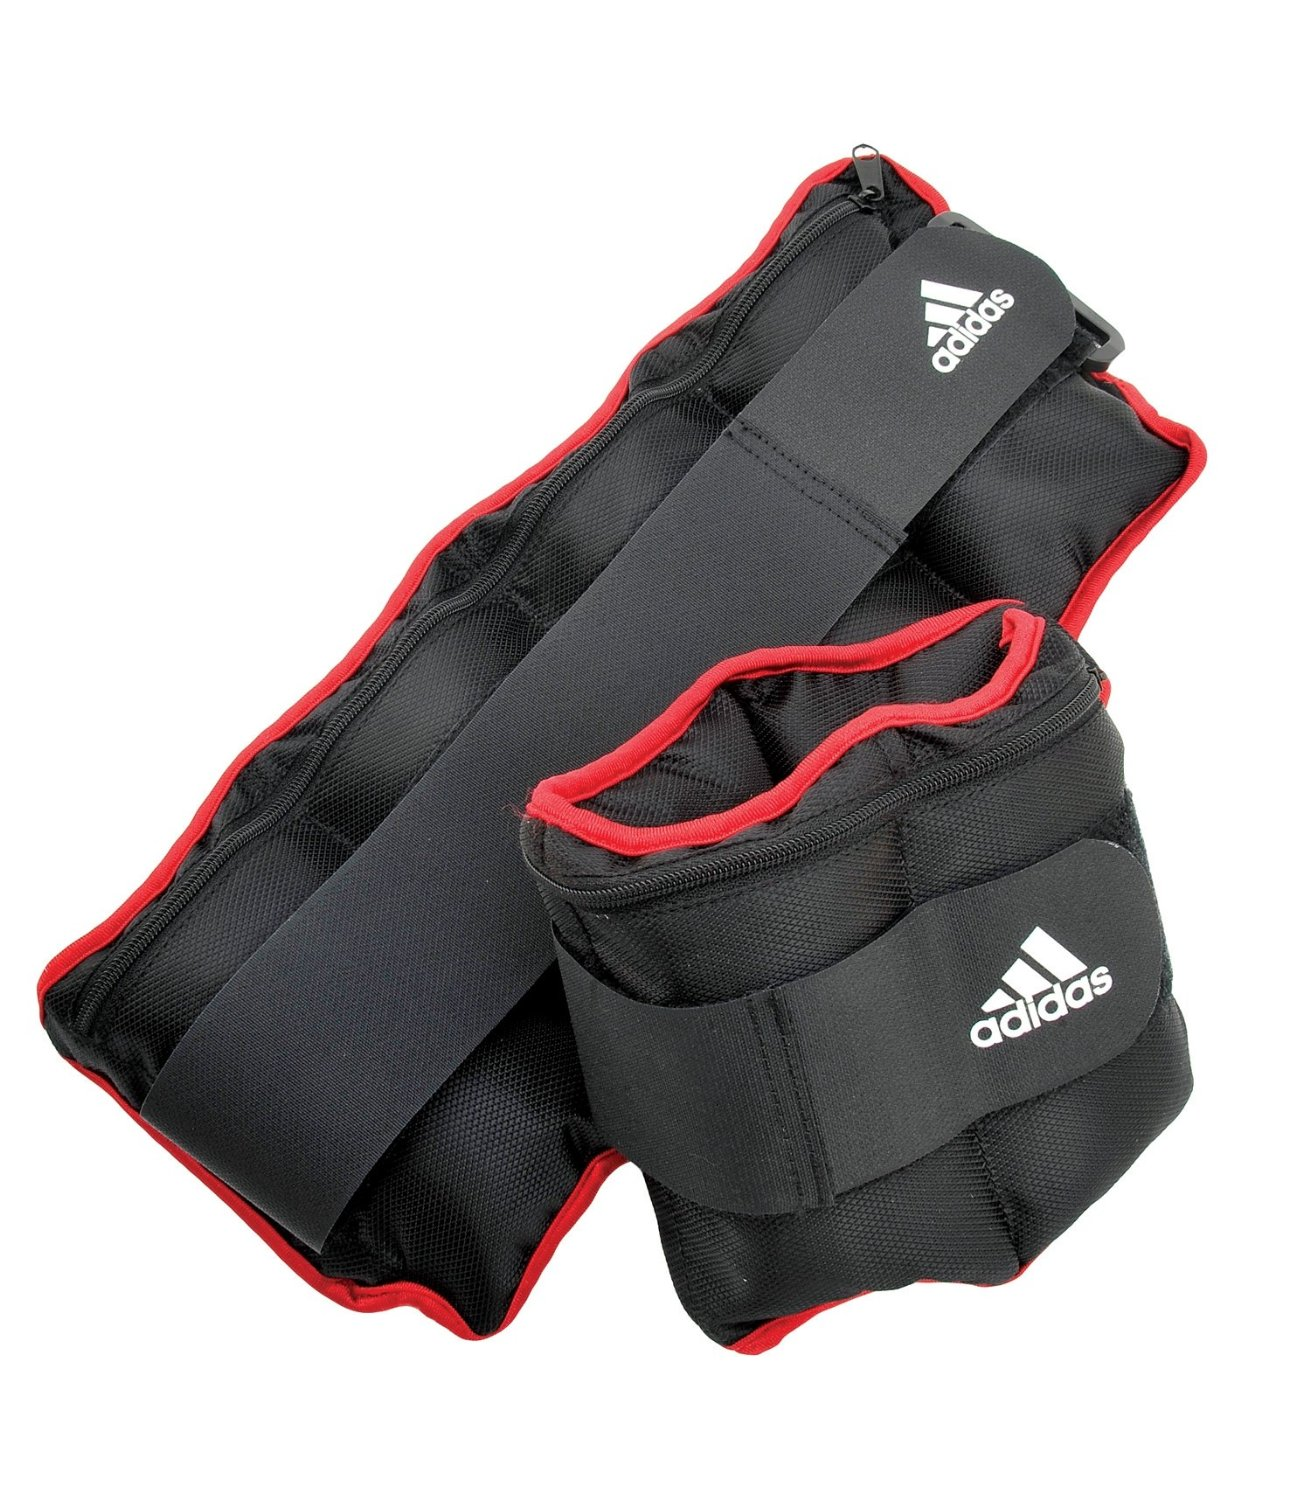 Adidas Ankle Weights-Best Ankle Weights